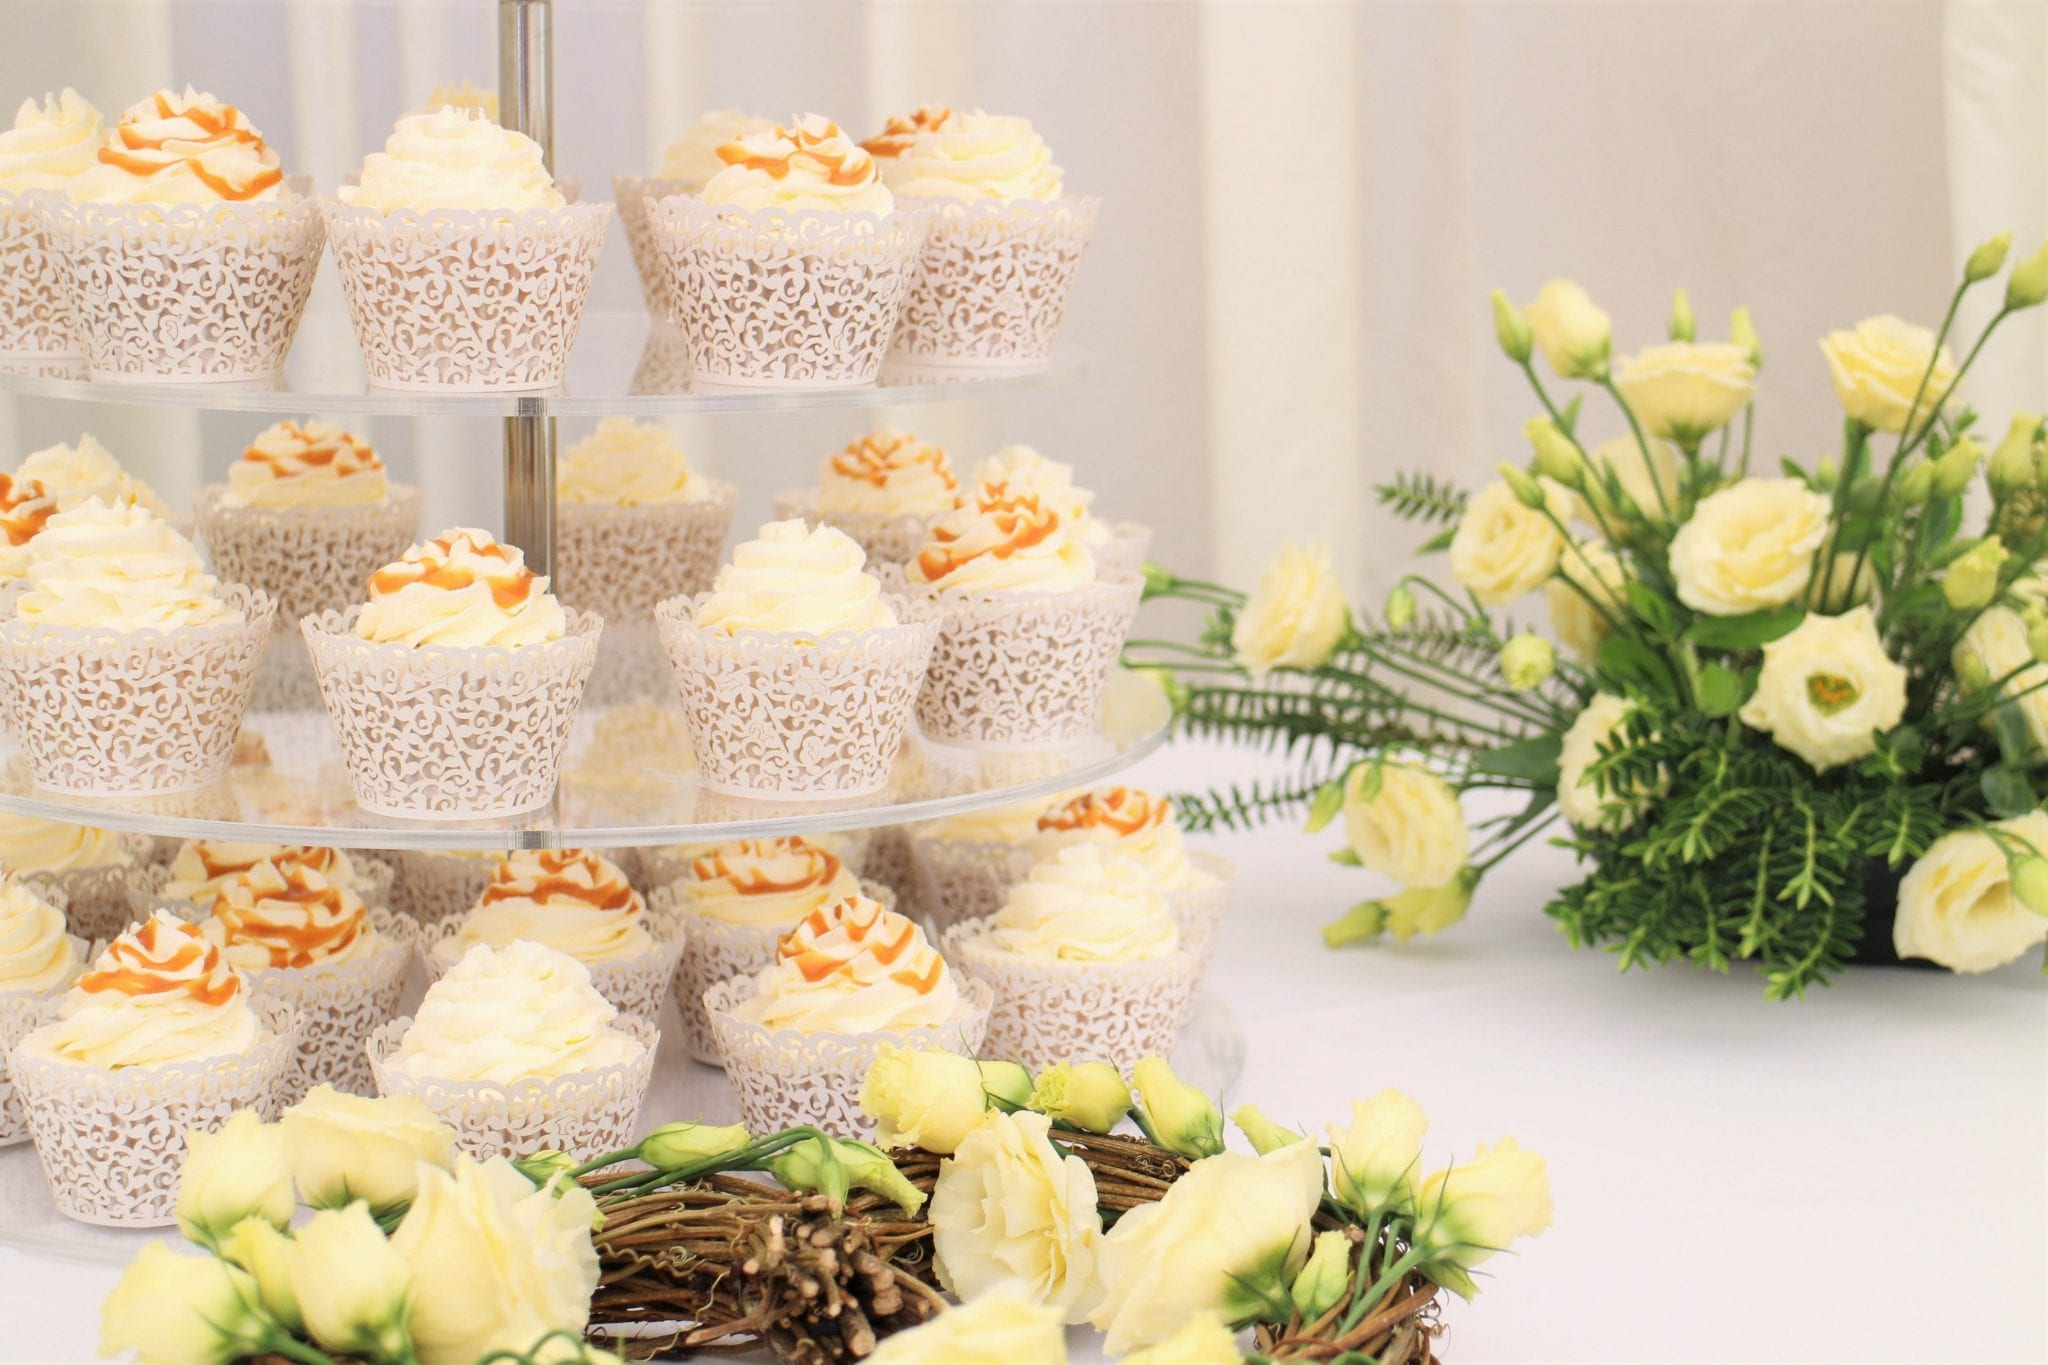 How To Set Up A Cupcake Tower - Simple, easy instructions